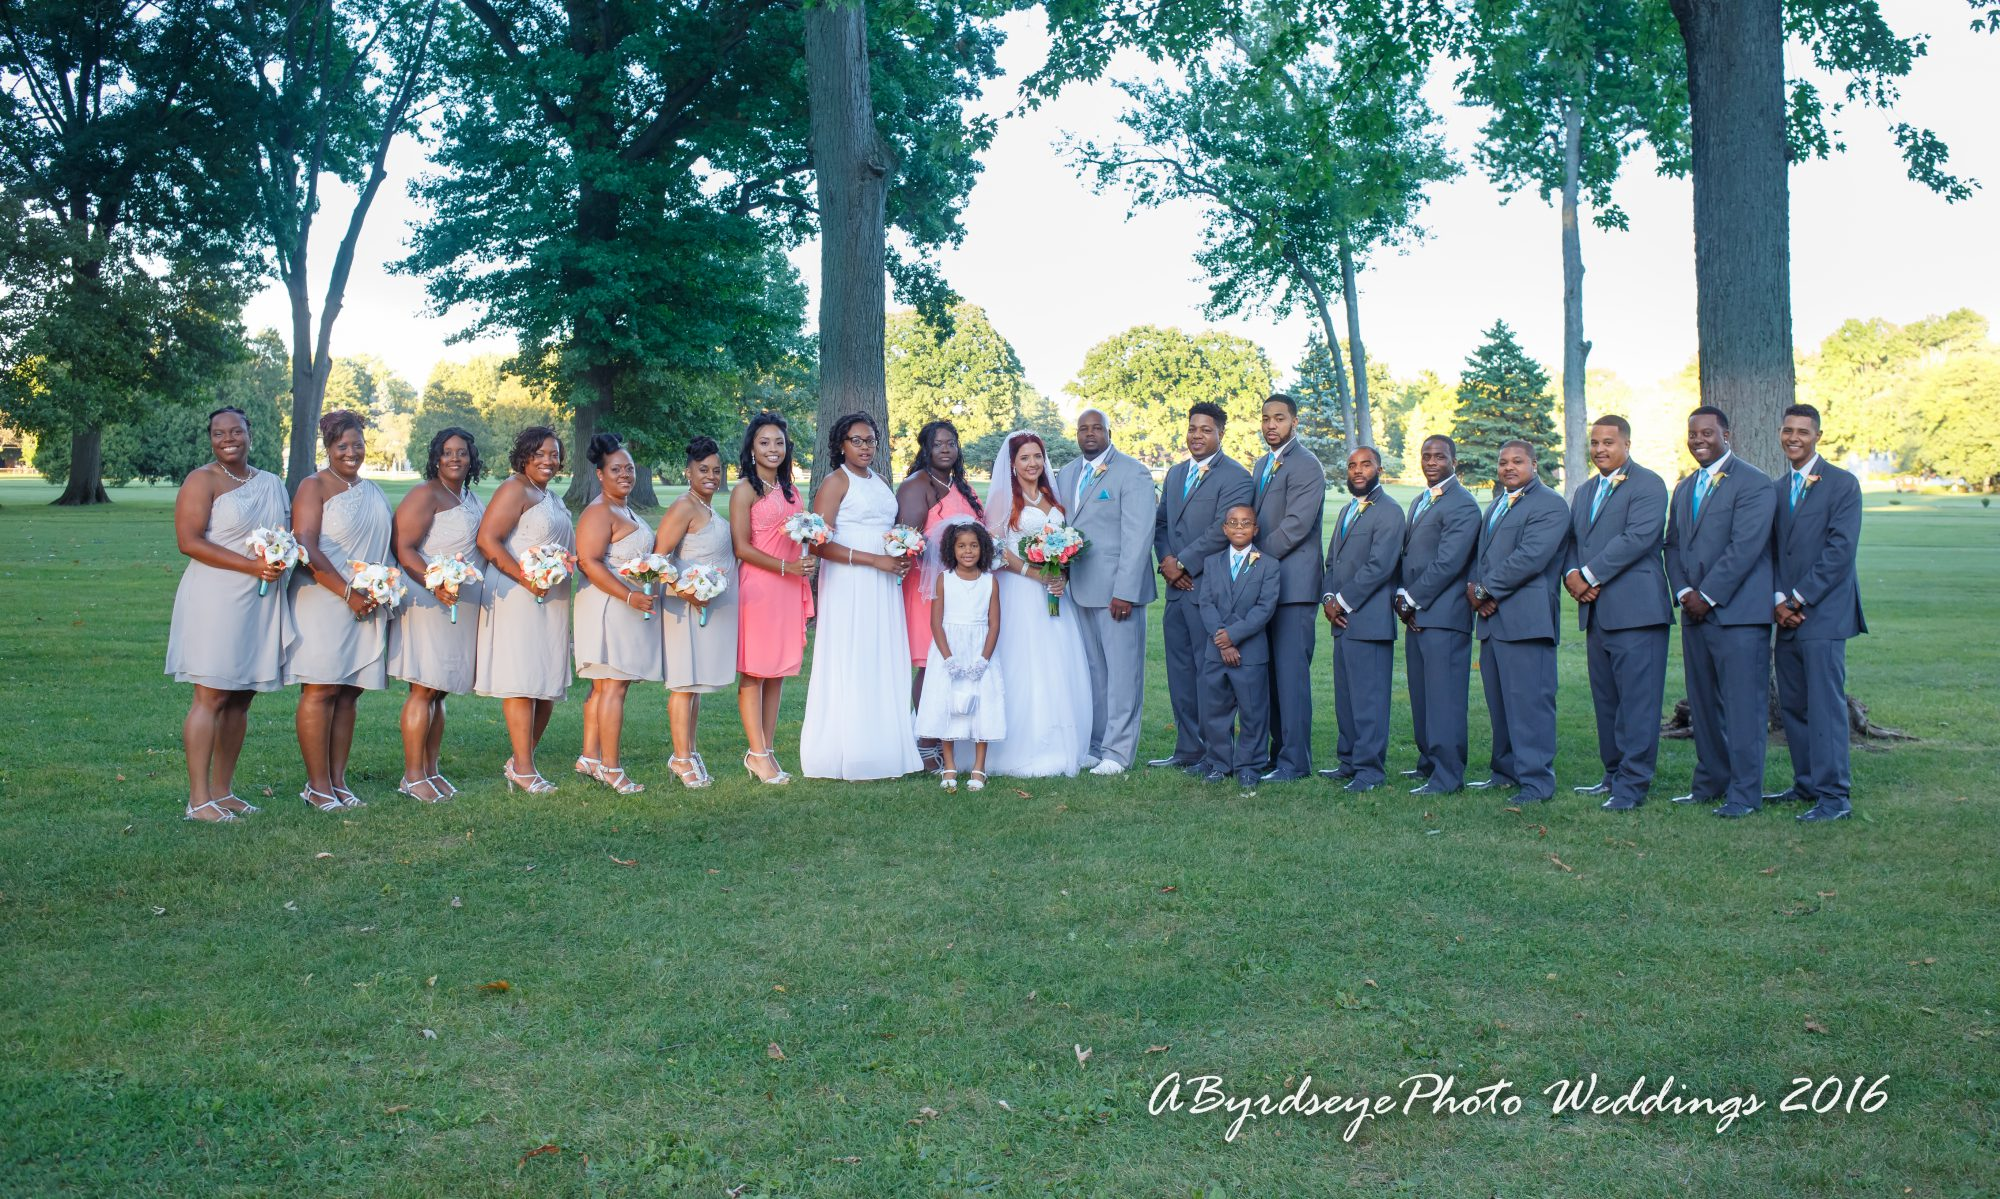 AByrdseyePhoto Productions Photography